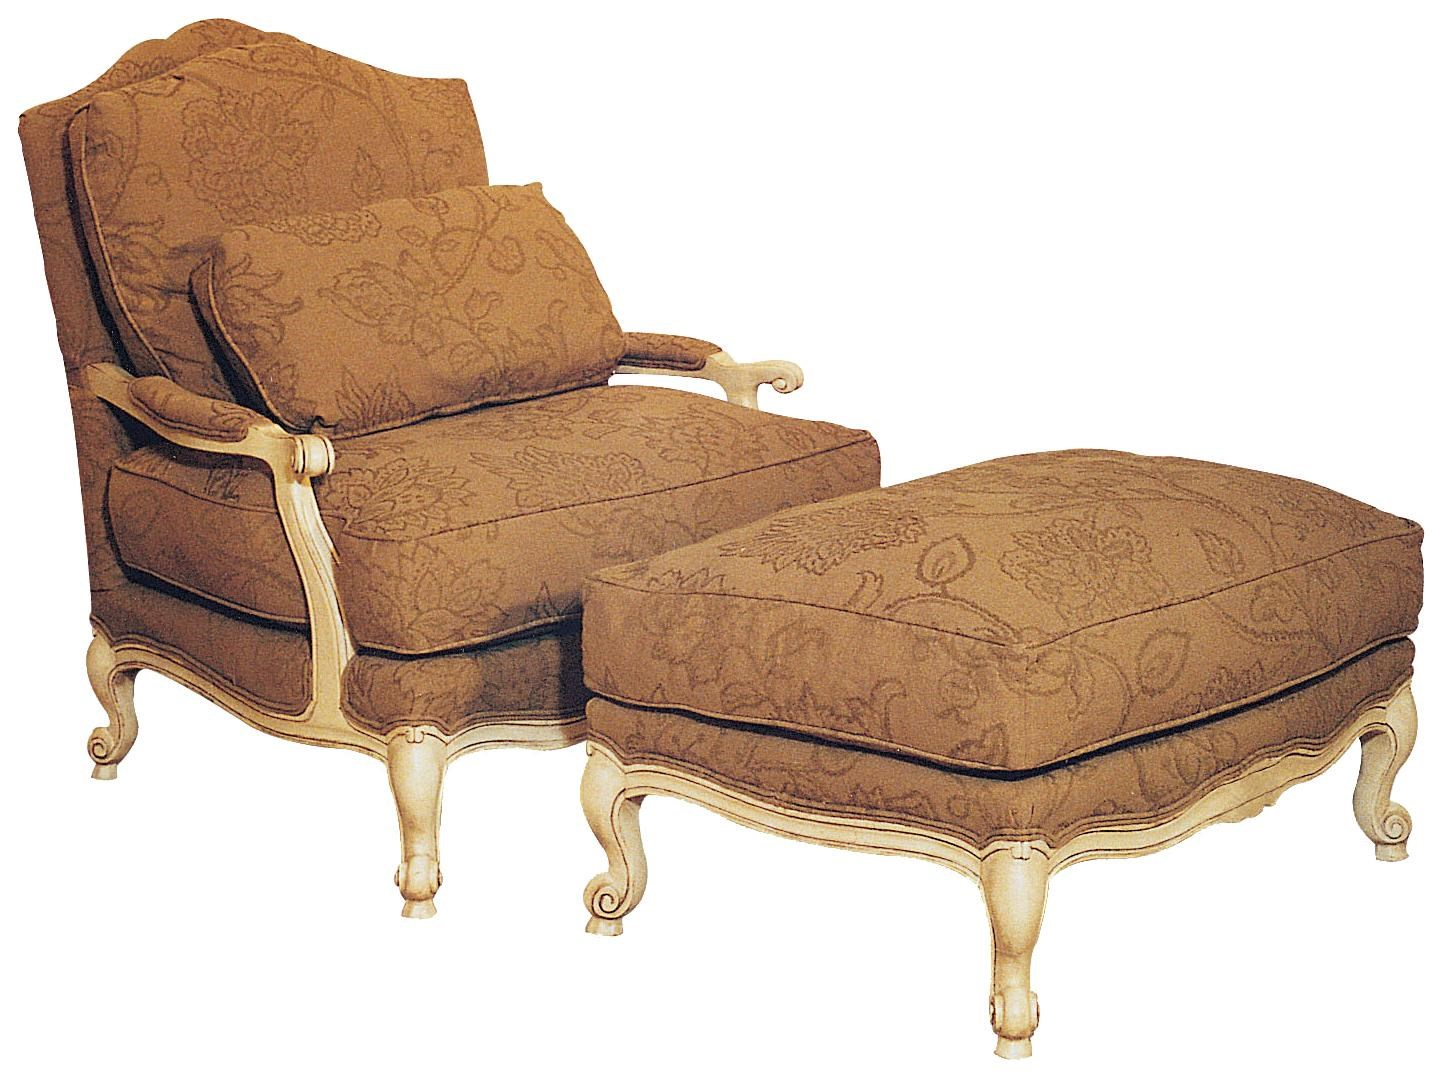 Chairs With Ottoman Chairs Victorian Lounge Chair Ottoman Set By Fairfield At Olinde S Furniture